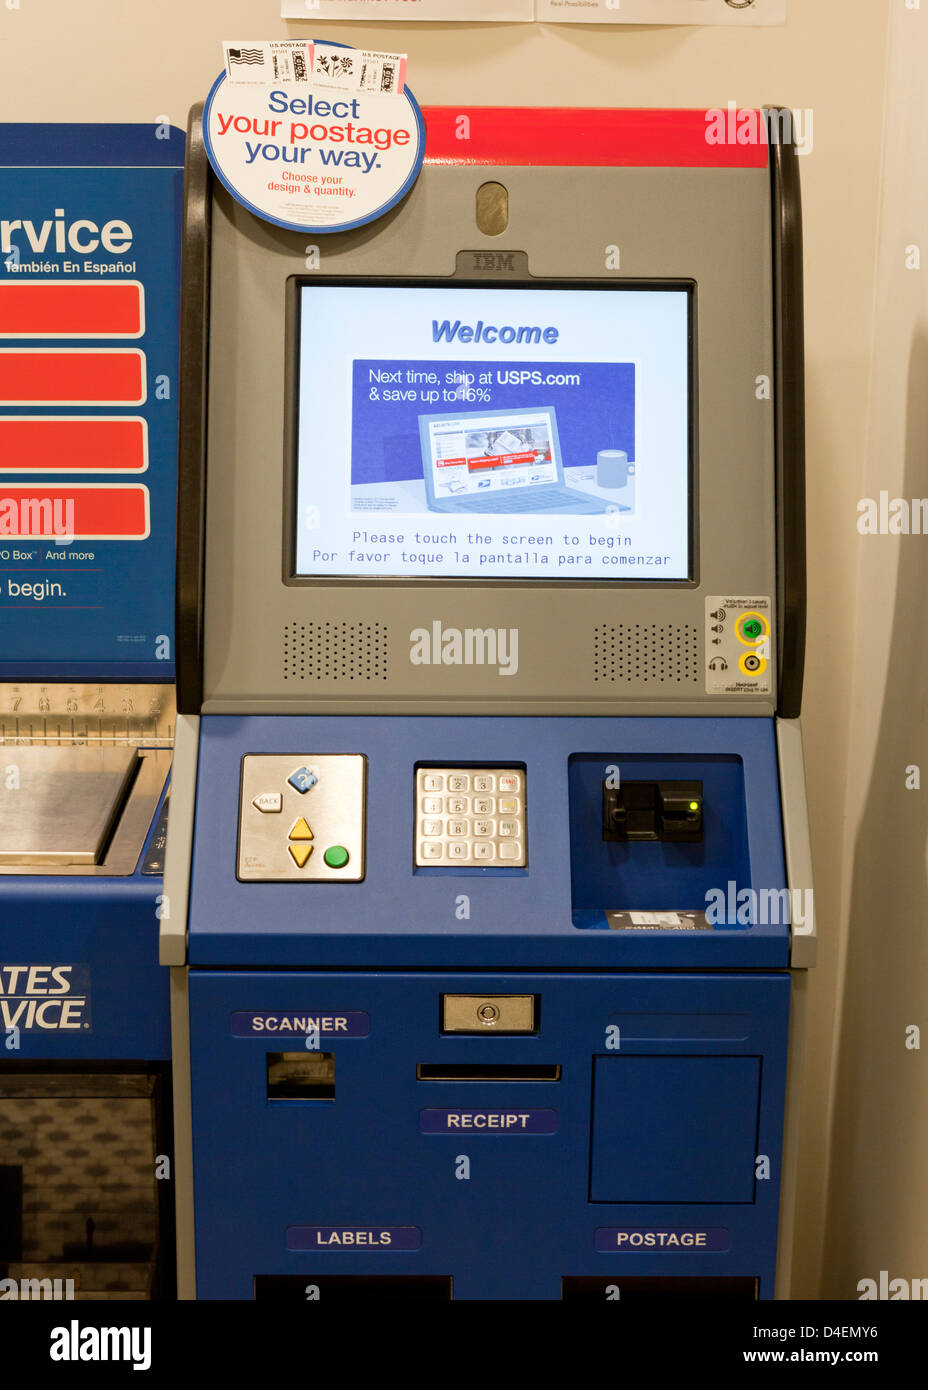 Automated Postal Center machine at the US Post Office - Stock Image